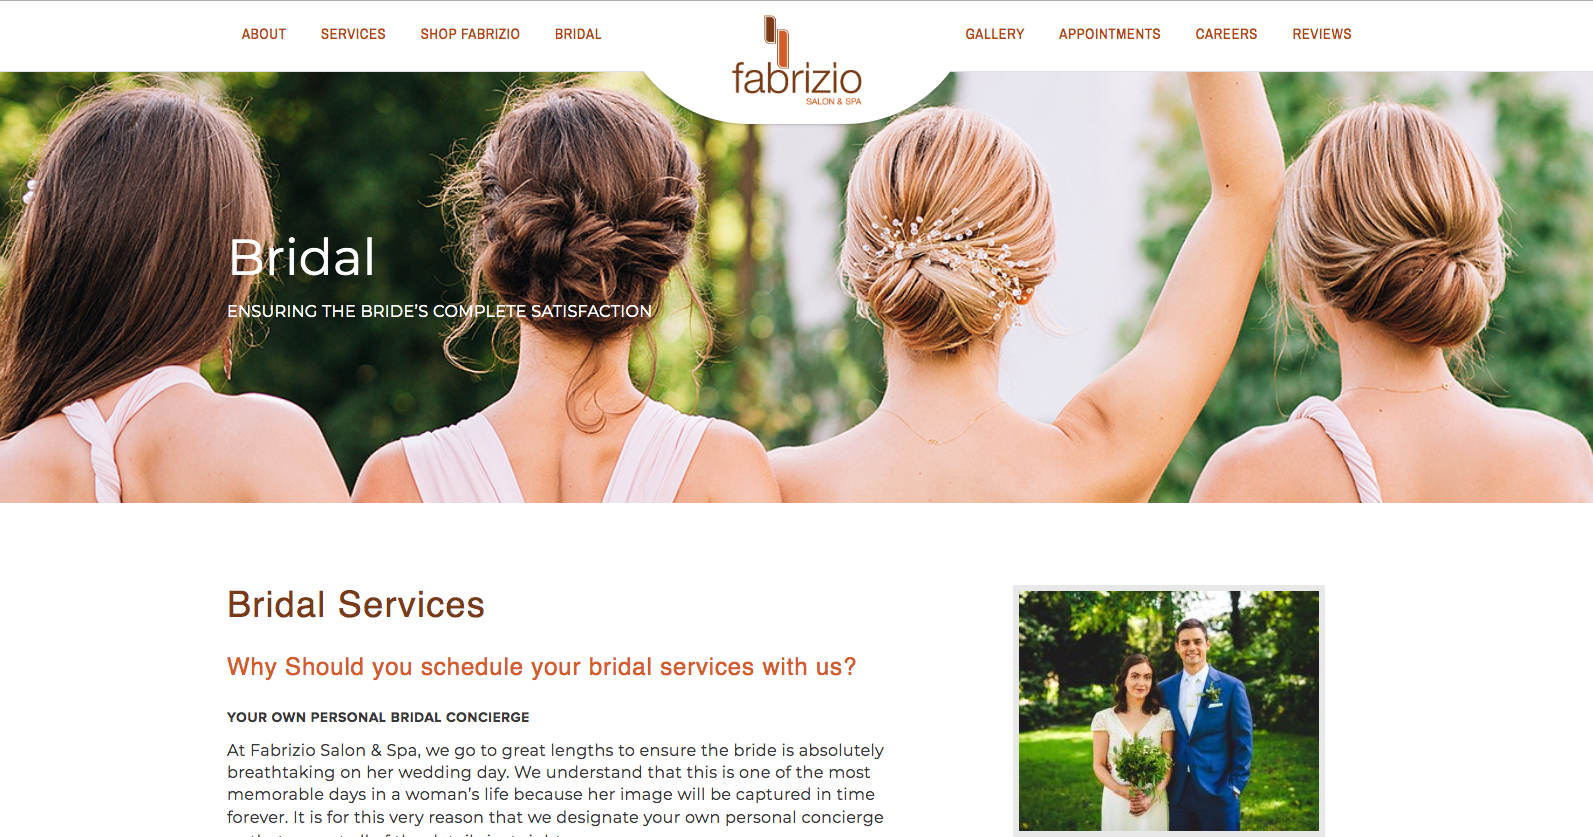 Fabrizio Salon & Spa  dedicates a page to their bridal services.